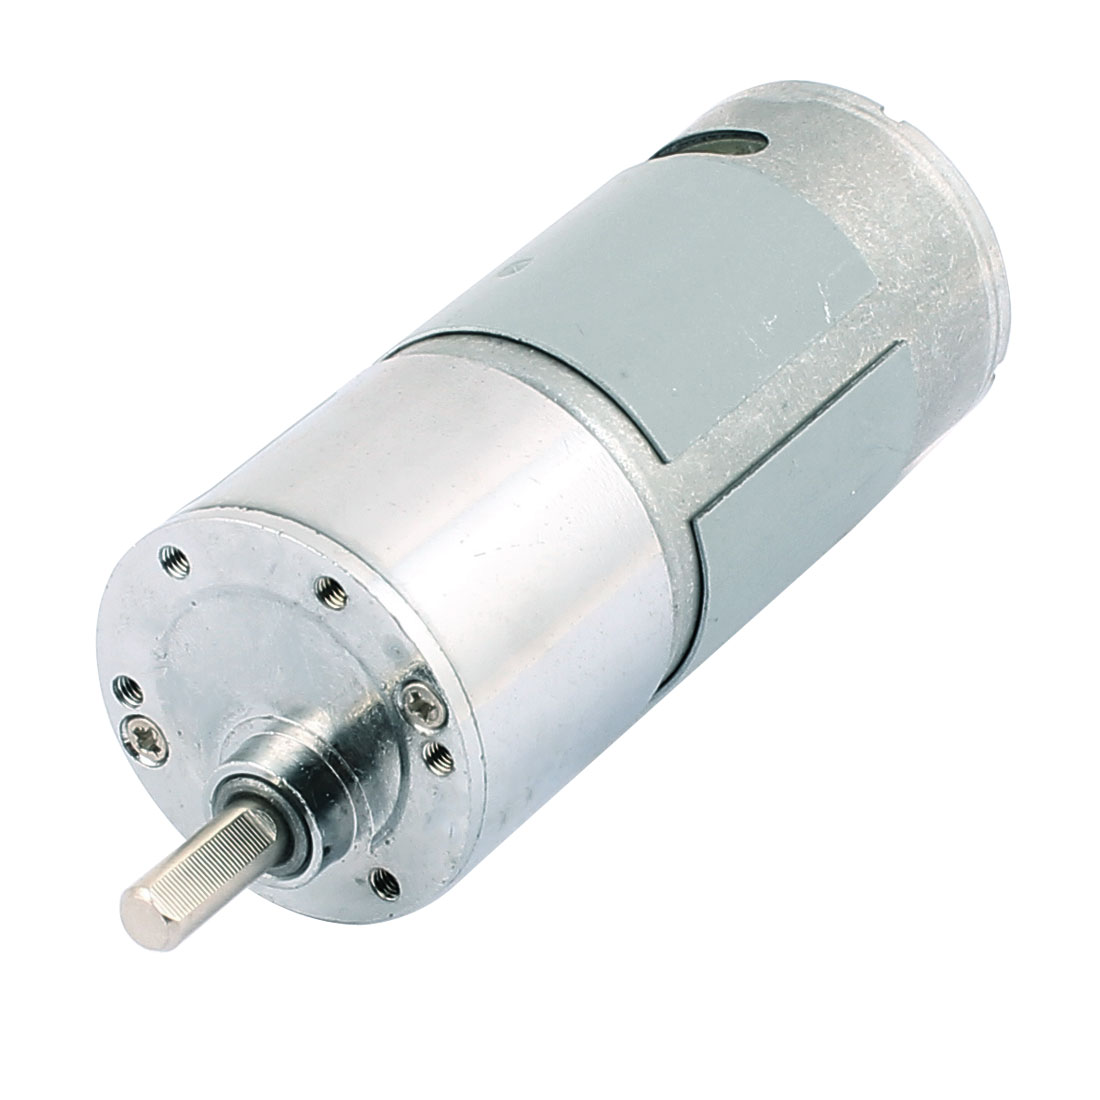 TJP37RG73.4i-Z6068 DC24V 60RPM 6mm Dia Shaft Electric Gear DC Motor